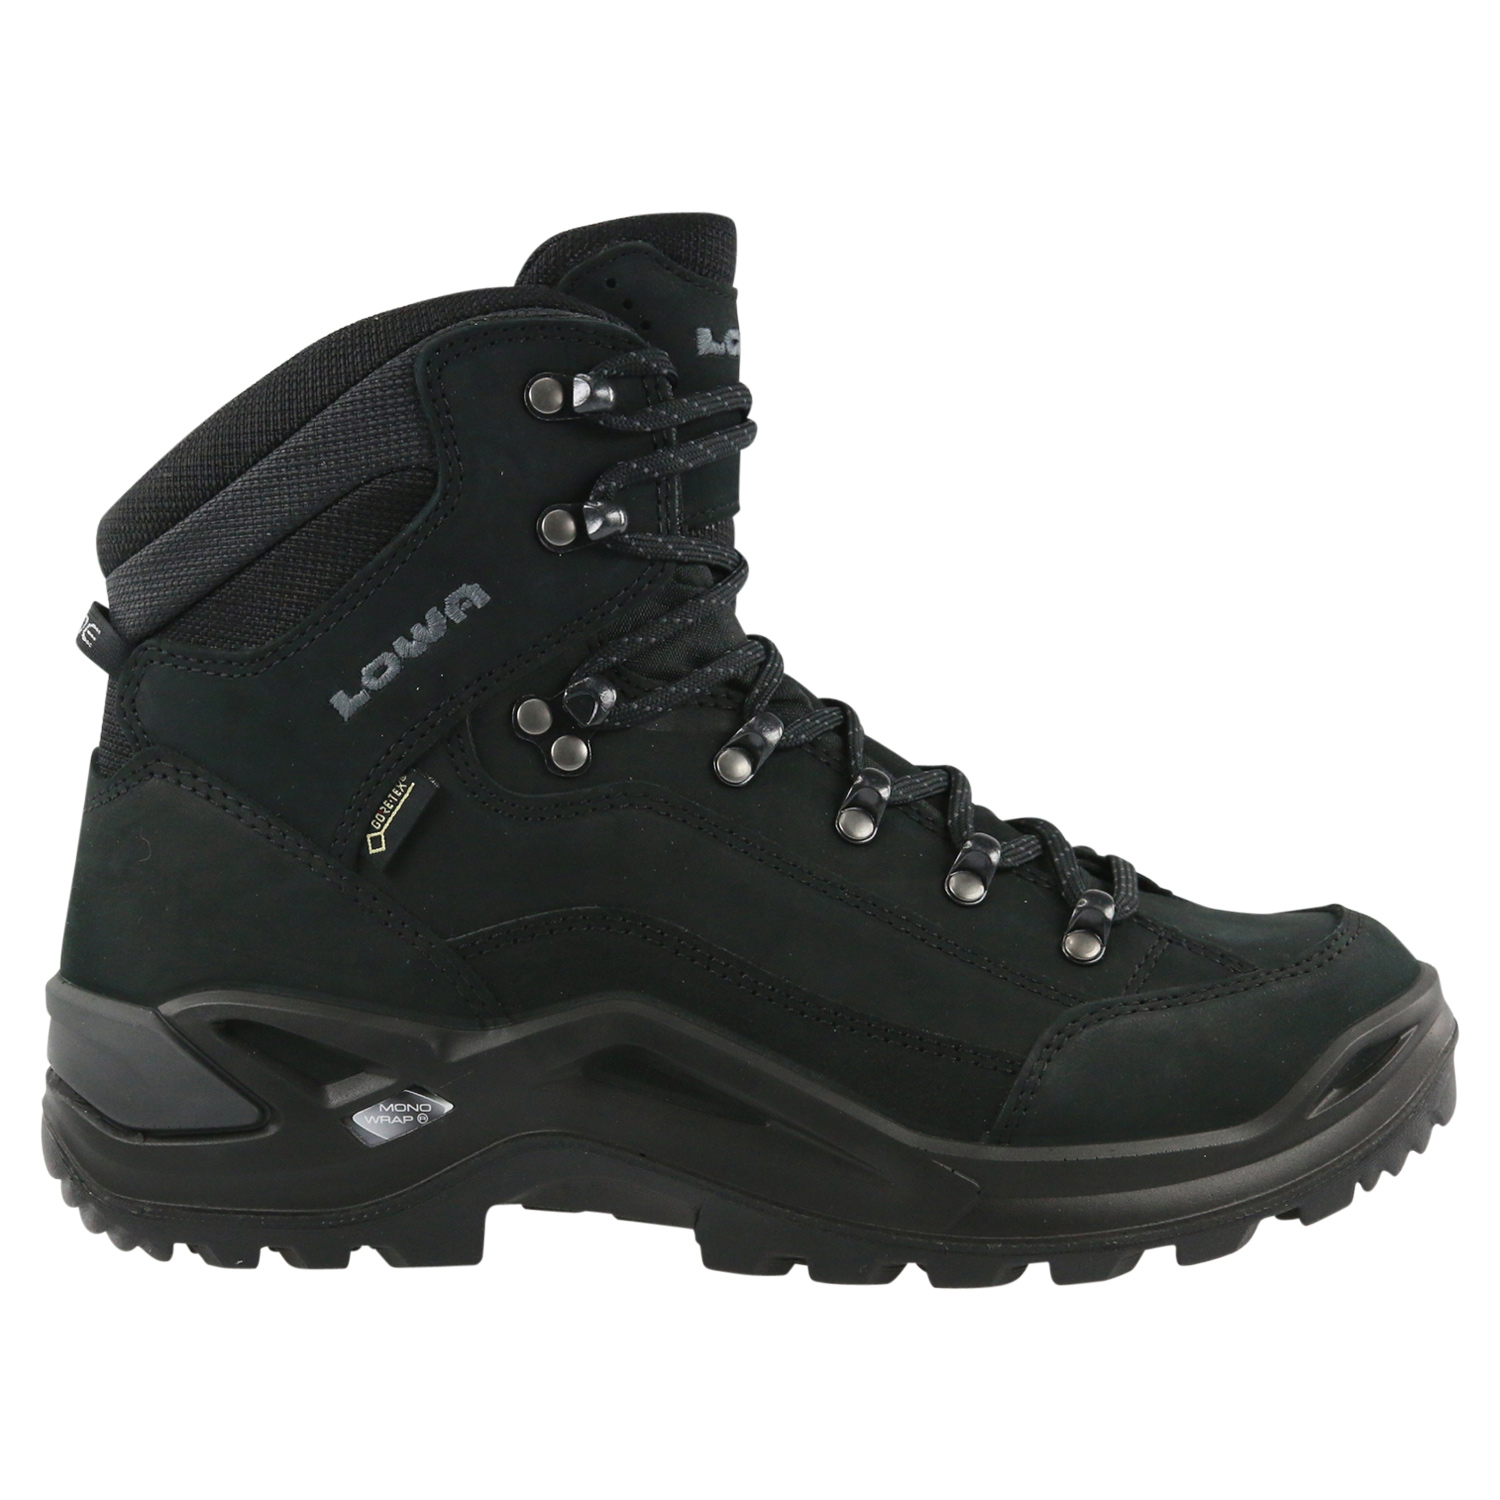 lowa renegade gtx gore tex mid stiefel boots wanderschuhe outdoor herren ebay. Black Bedroom Furniture Sets. Home Design Ideas